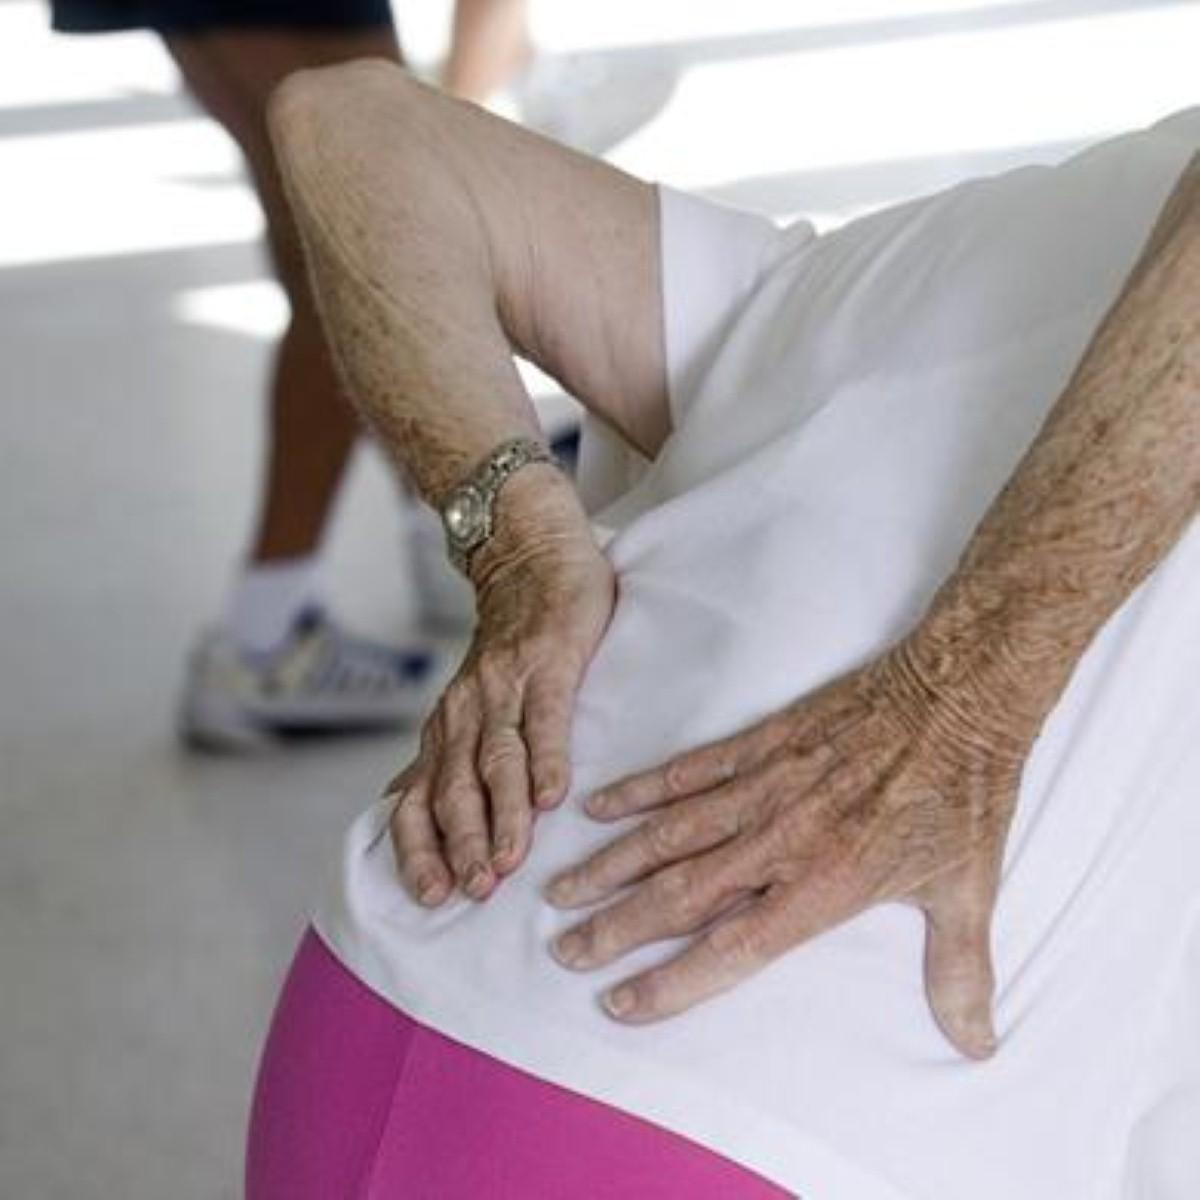 Antibiotics could cure 40% of back problems